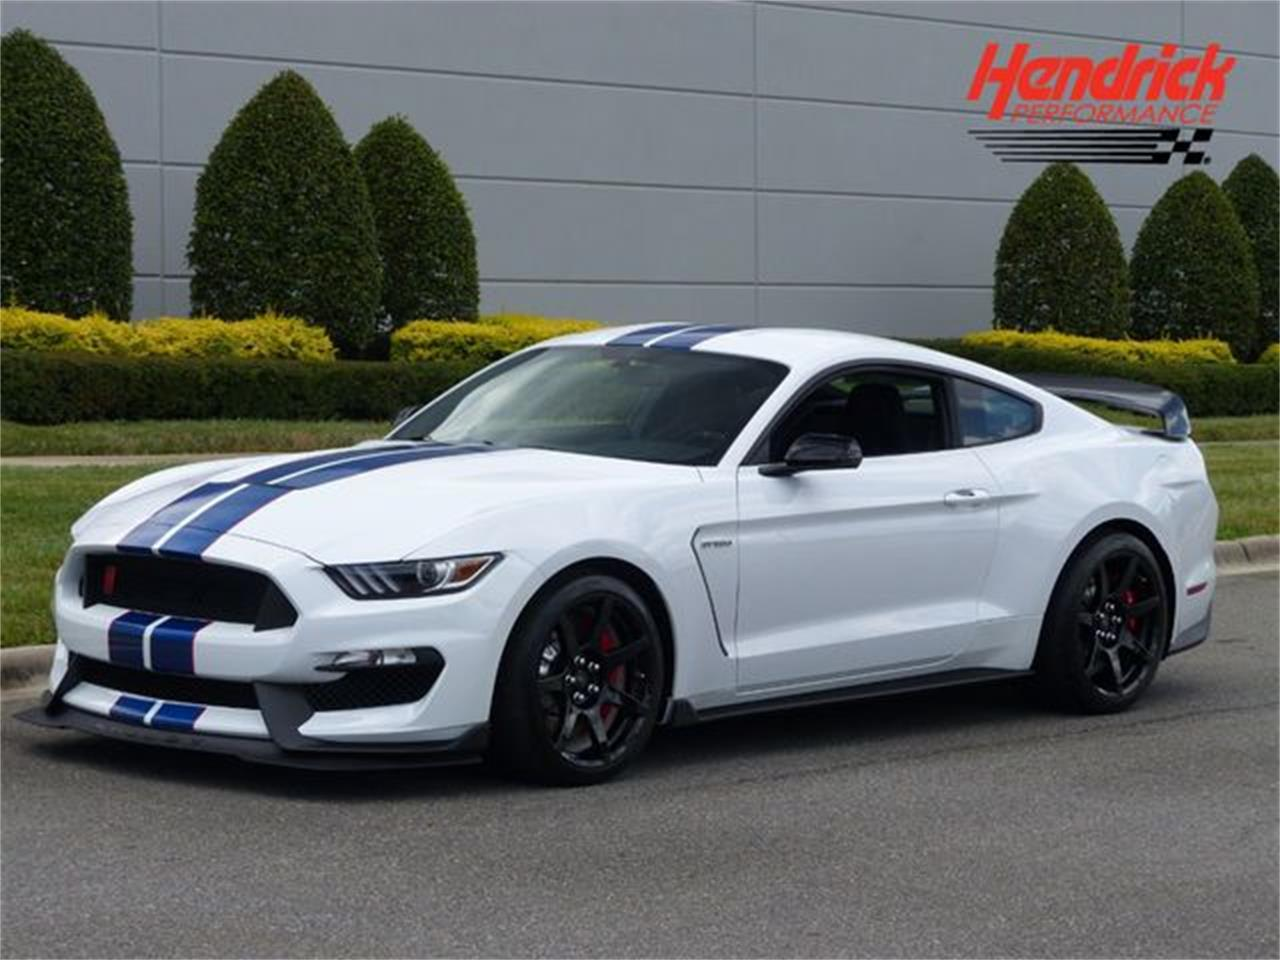 2017 ford mustang shelby gt350 for sale classiccars com cc 1379300 2017 ford mustang shelby gt350 for sale